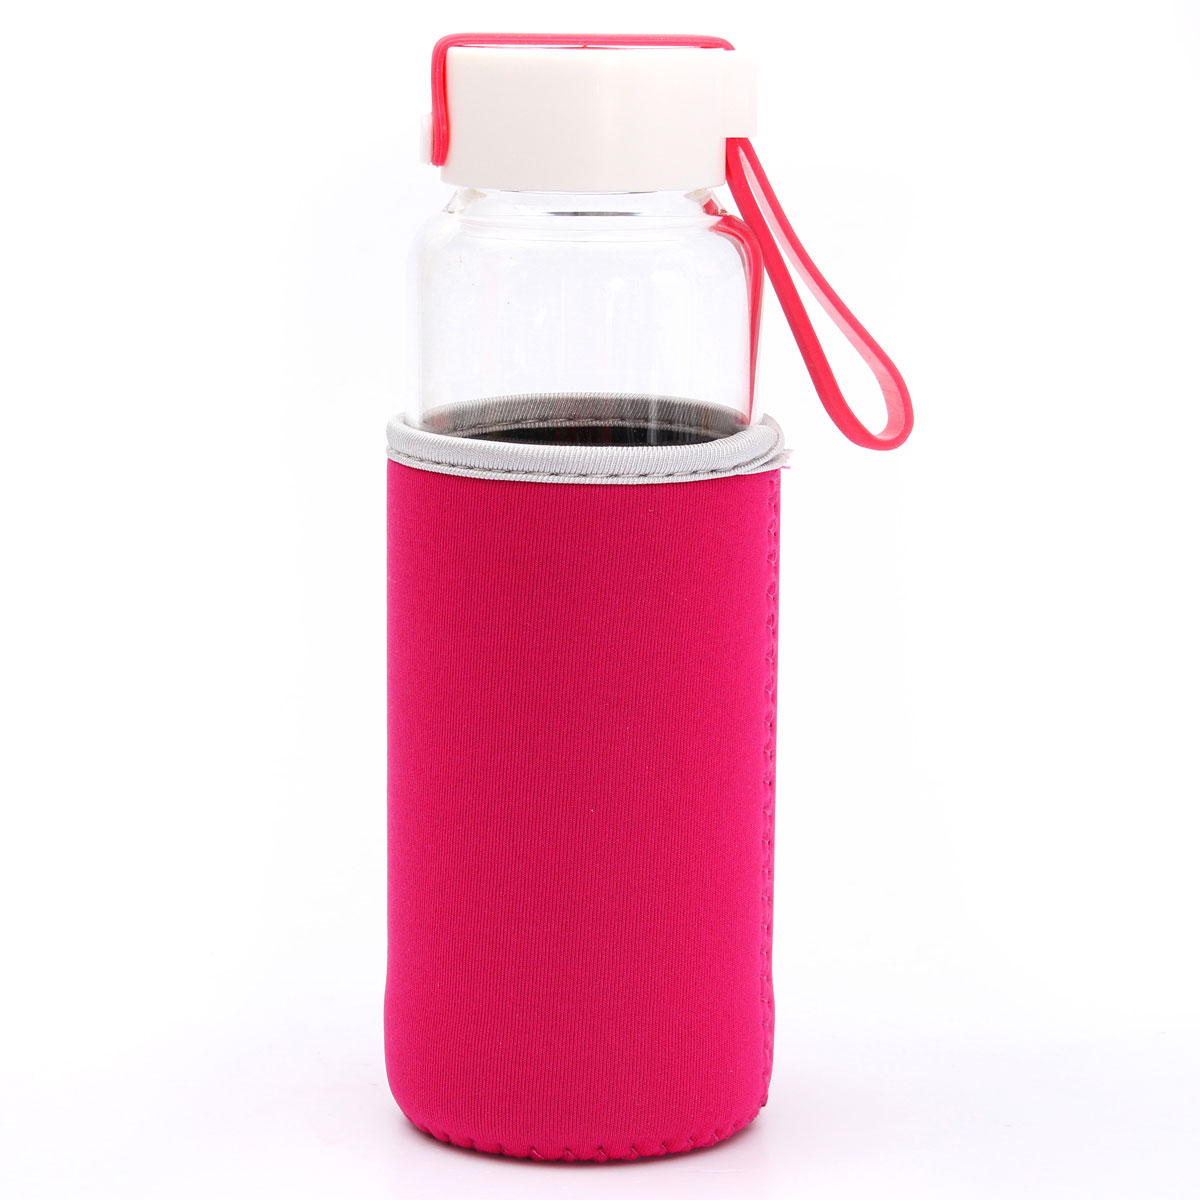 450ml transparent sport gourde bouteille infusion jus fruit eau th filtre sac ebay. Black Bedroom Furniture Sets. Home Design Ideas